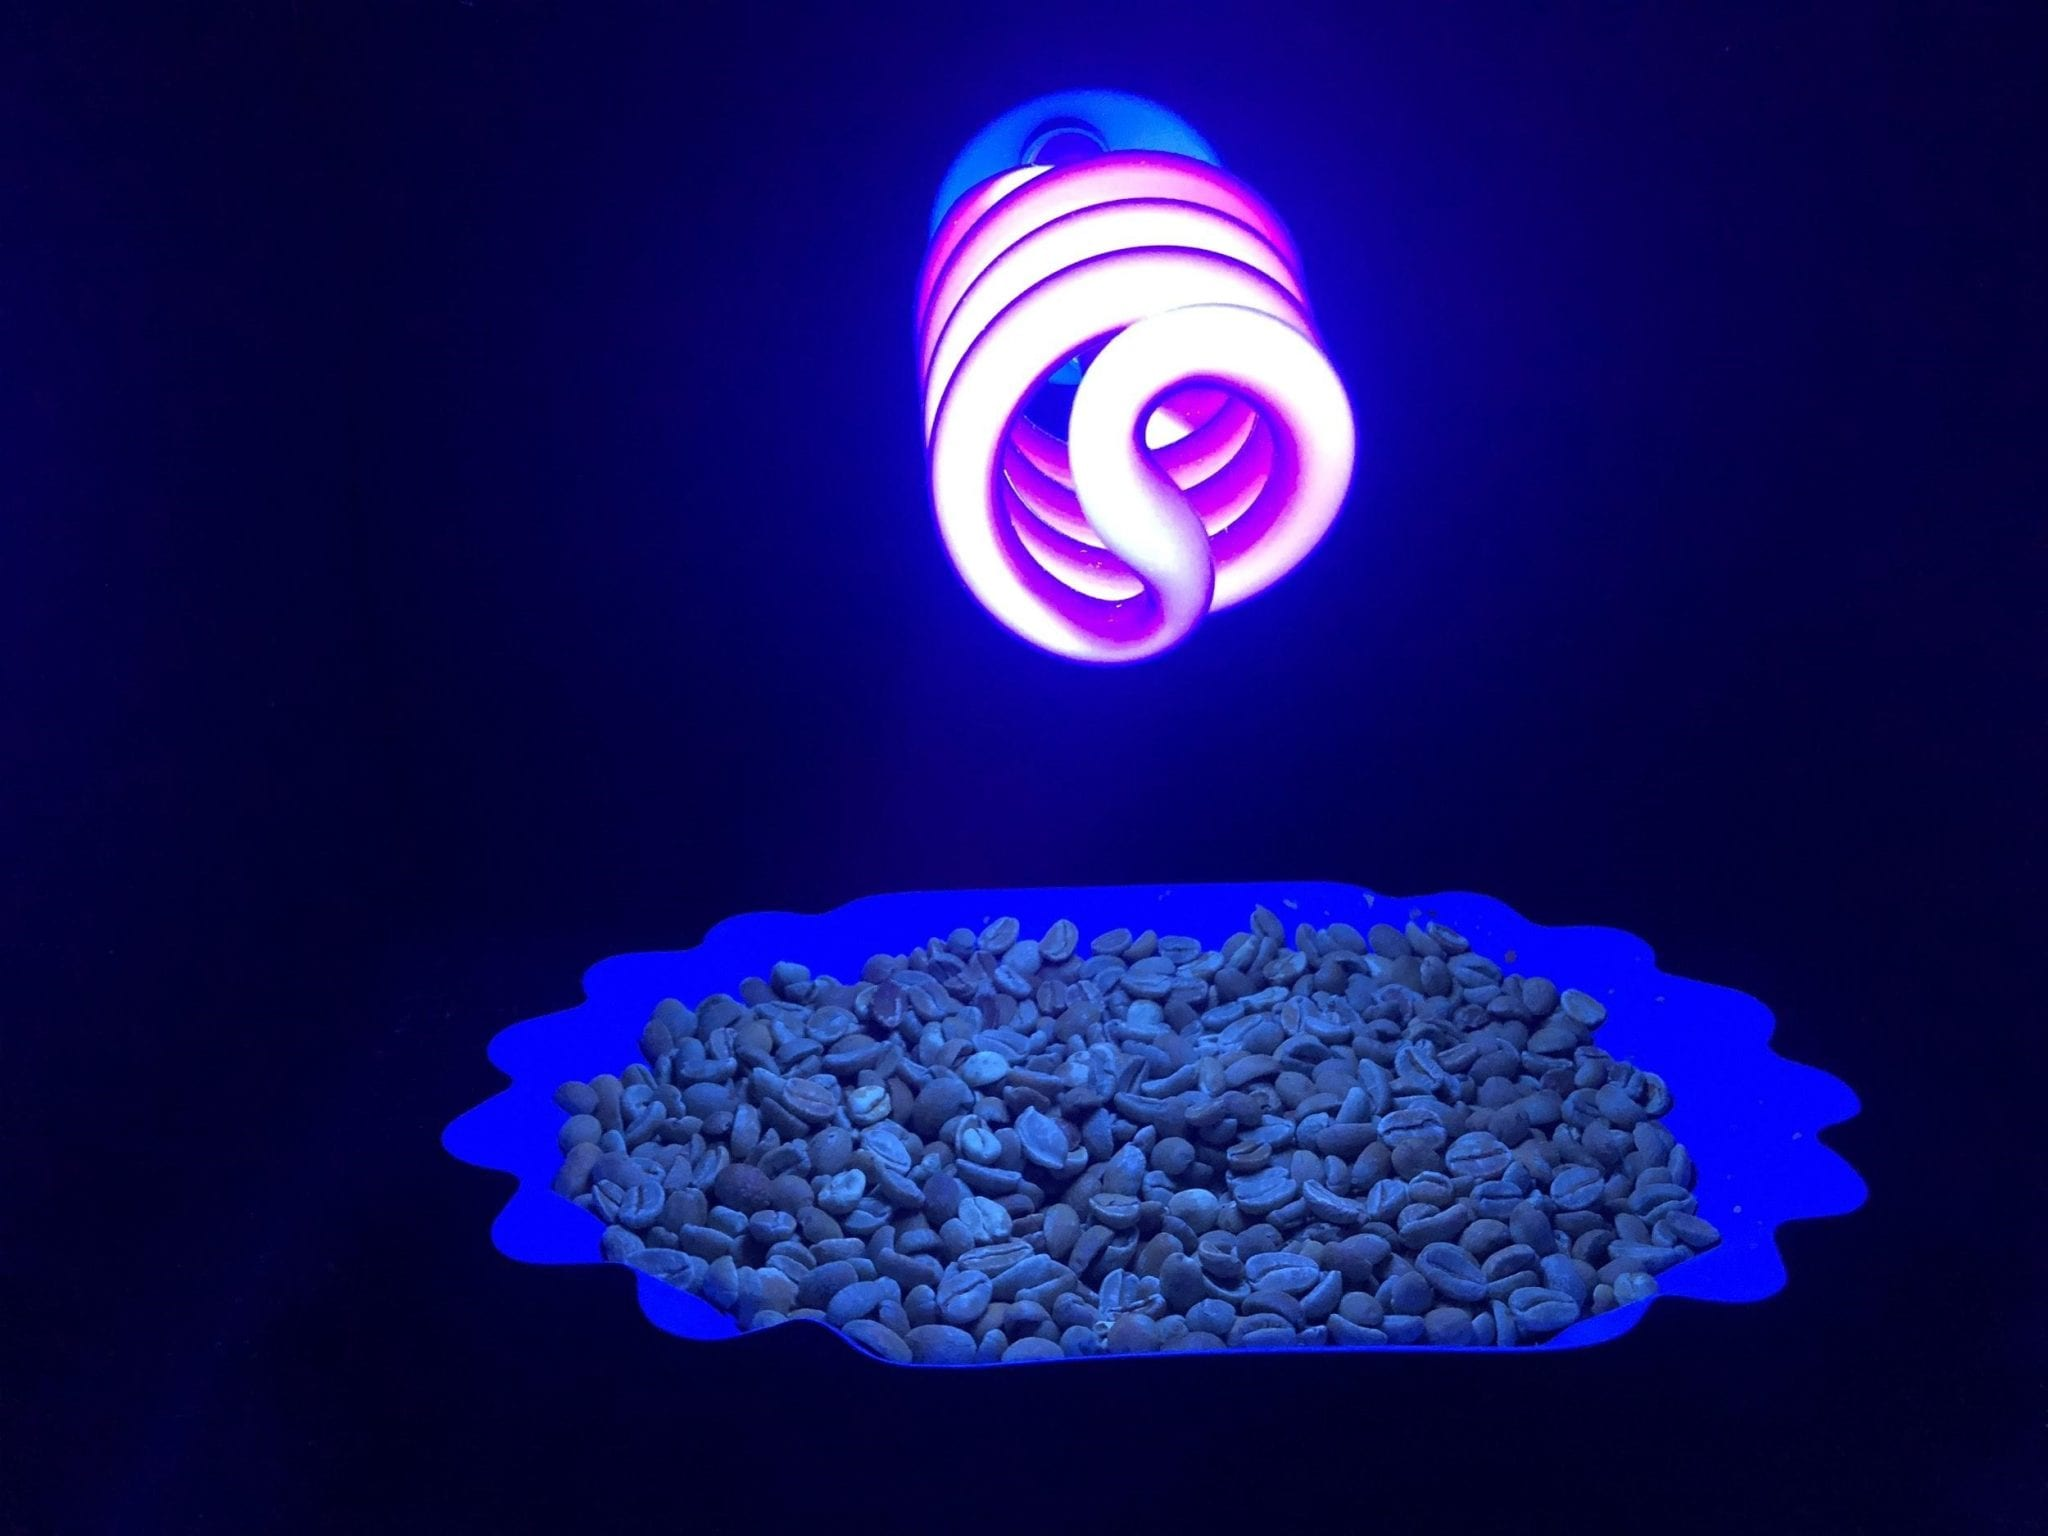 Green beans under a black light